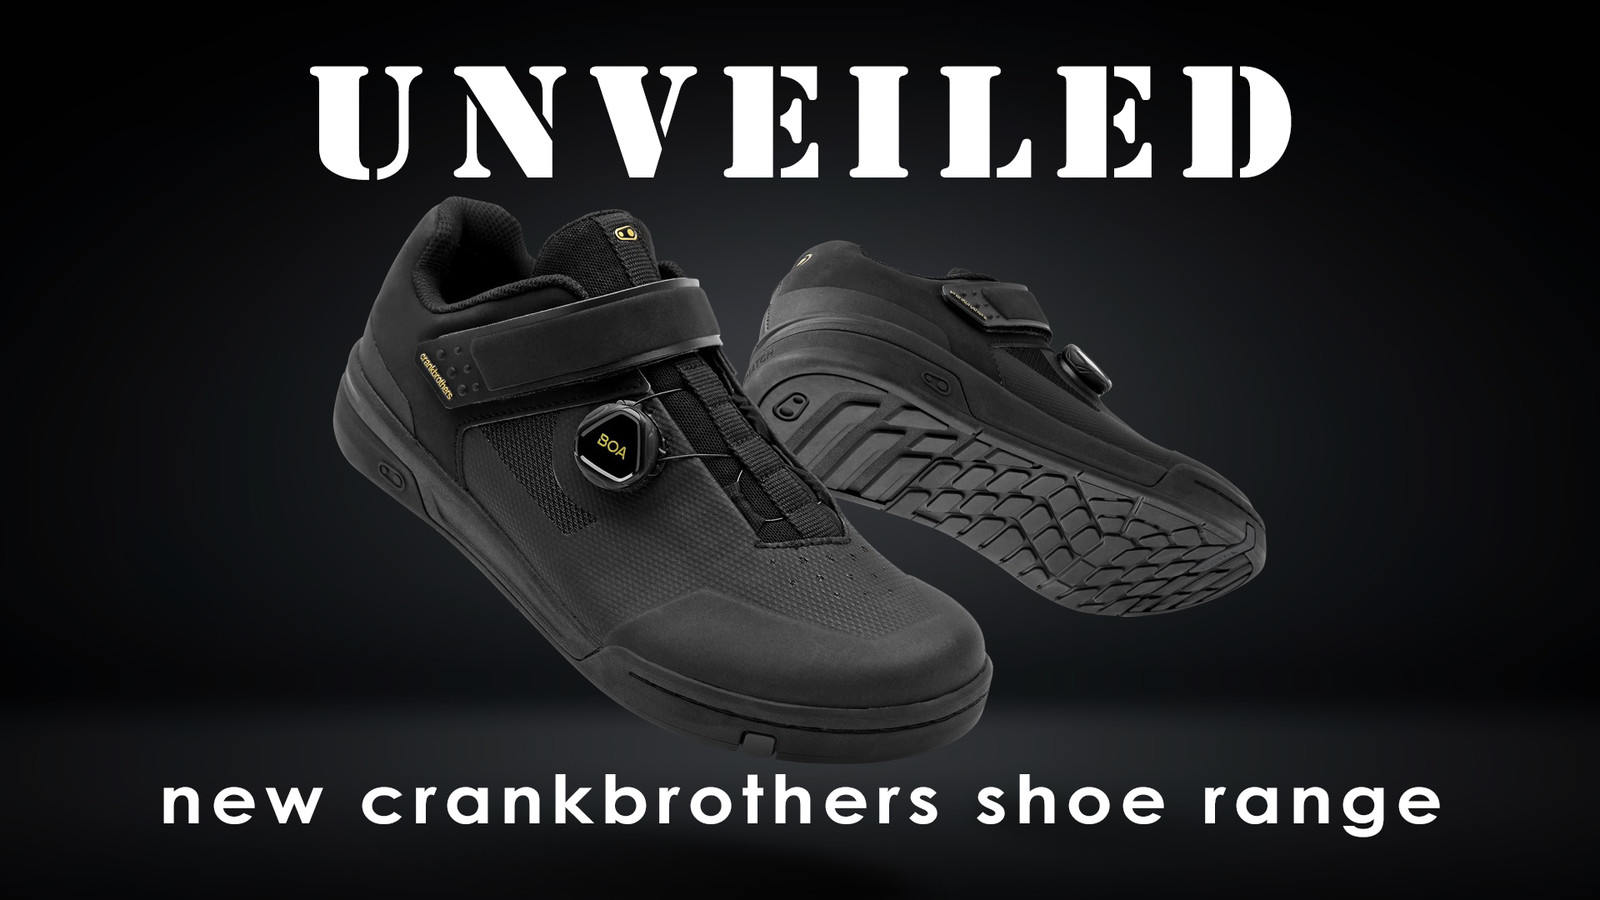 Crankbrothers Shoe Range Unveiled, New Protection and Winter Wear - Vital Gear Show